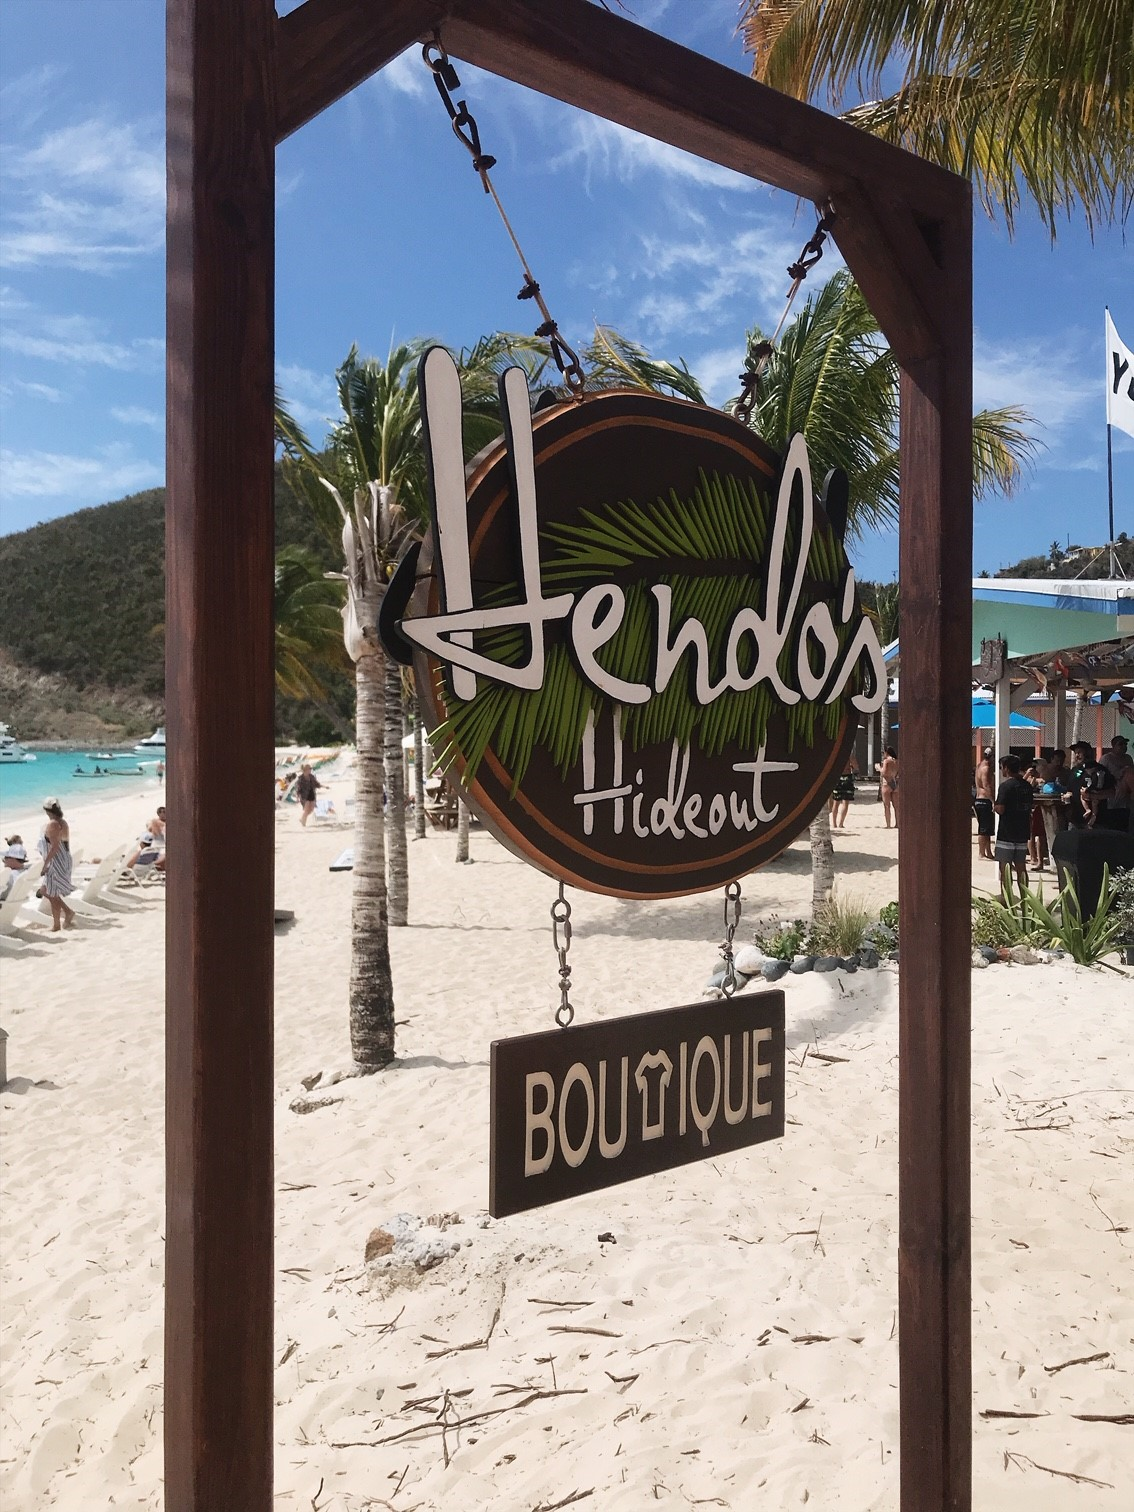 Hanging out at Hendo's Hideout - Jost Van Dyke, British Virgin Islands